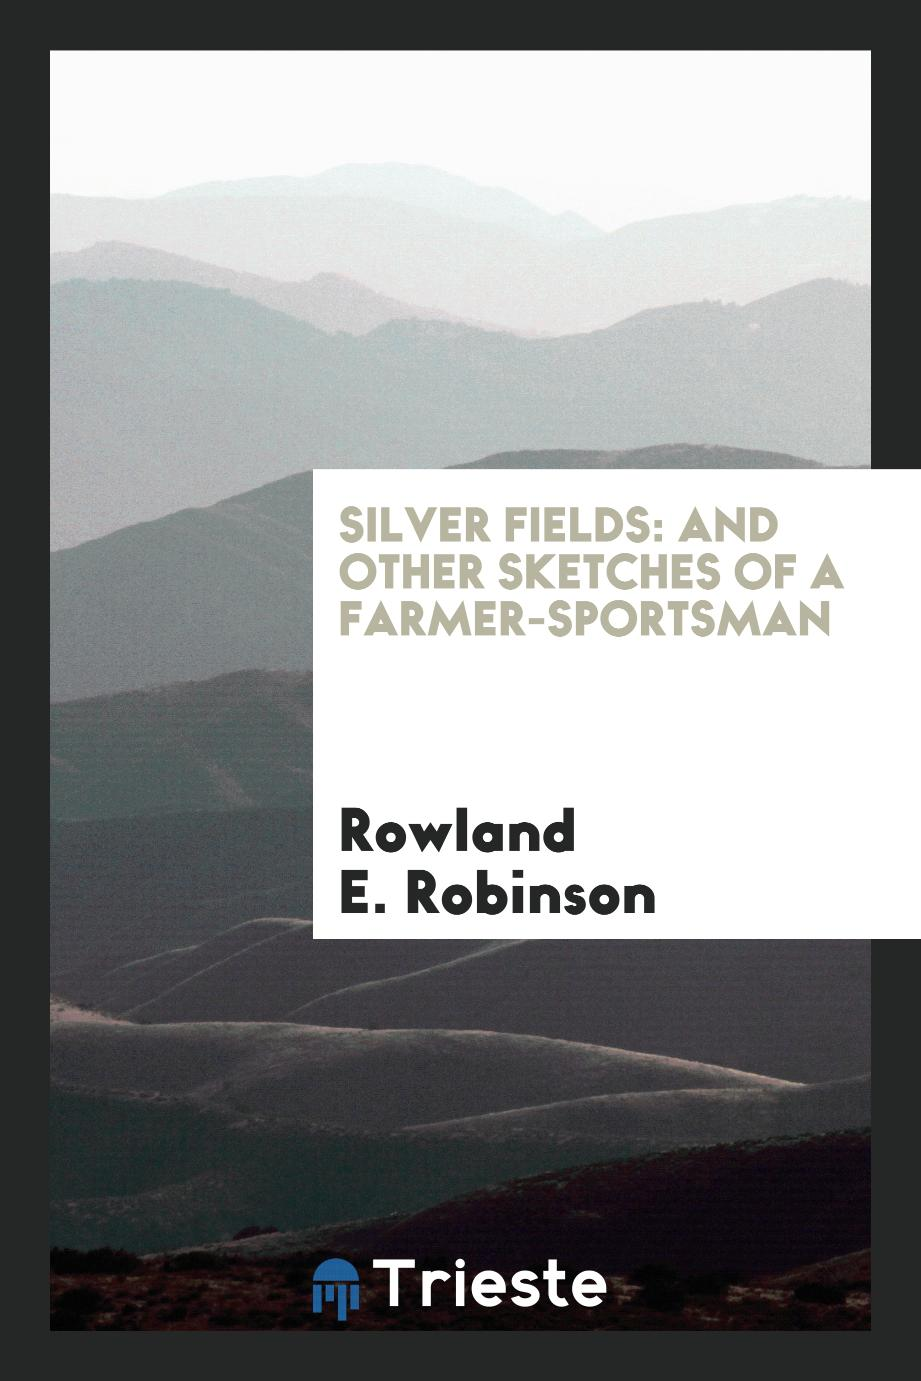 Silver fields: and other sketches of a farmer-sportsman